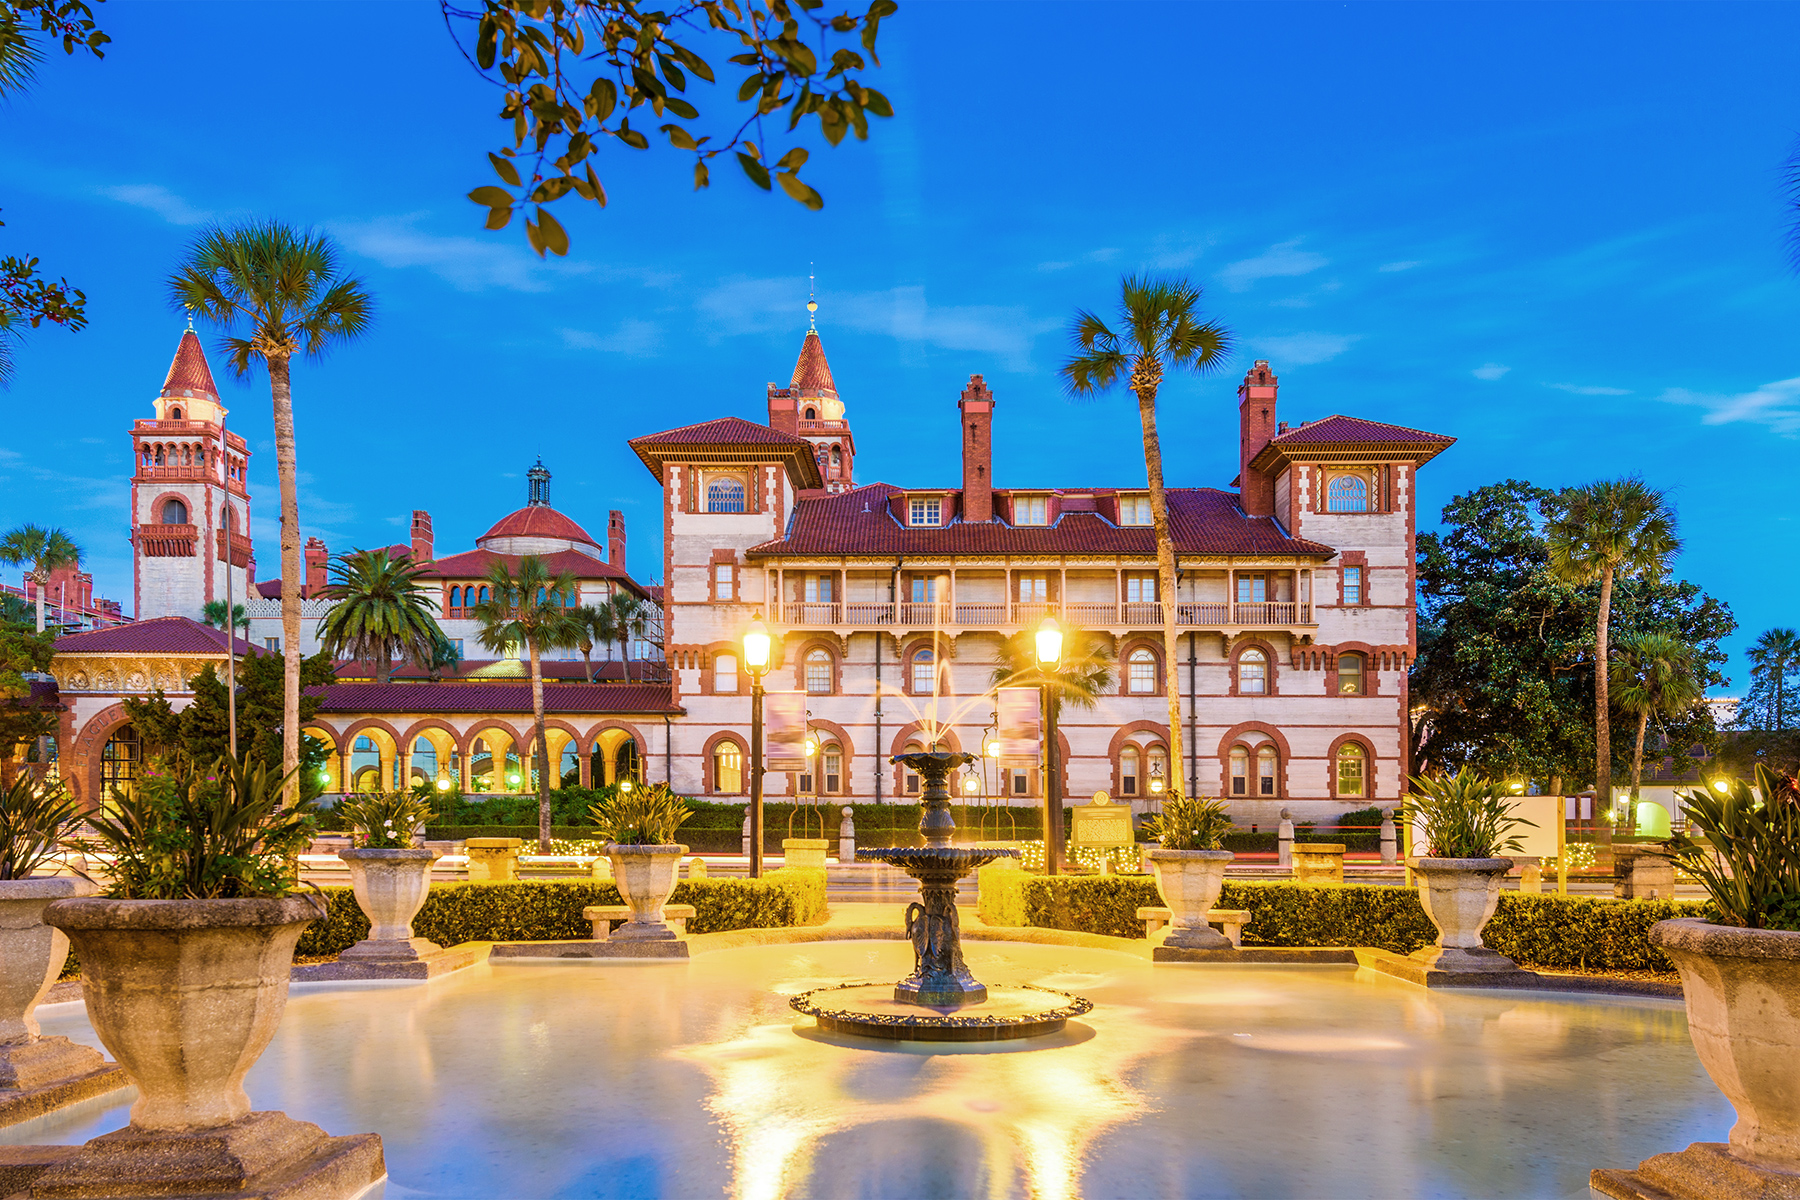 Panorama view of St. Augustine, Florida at twilight